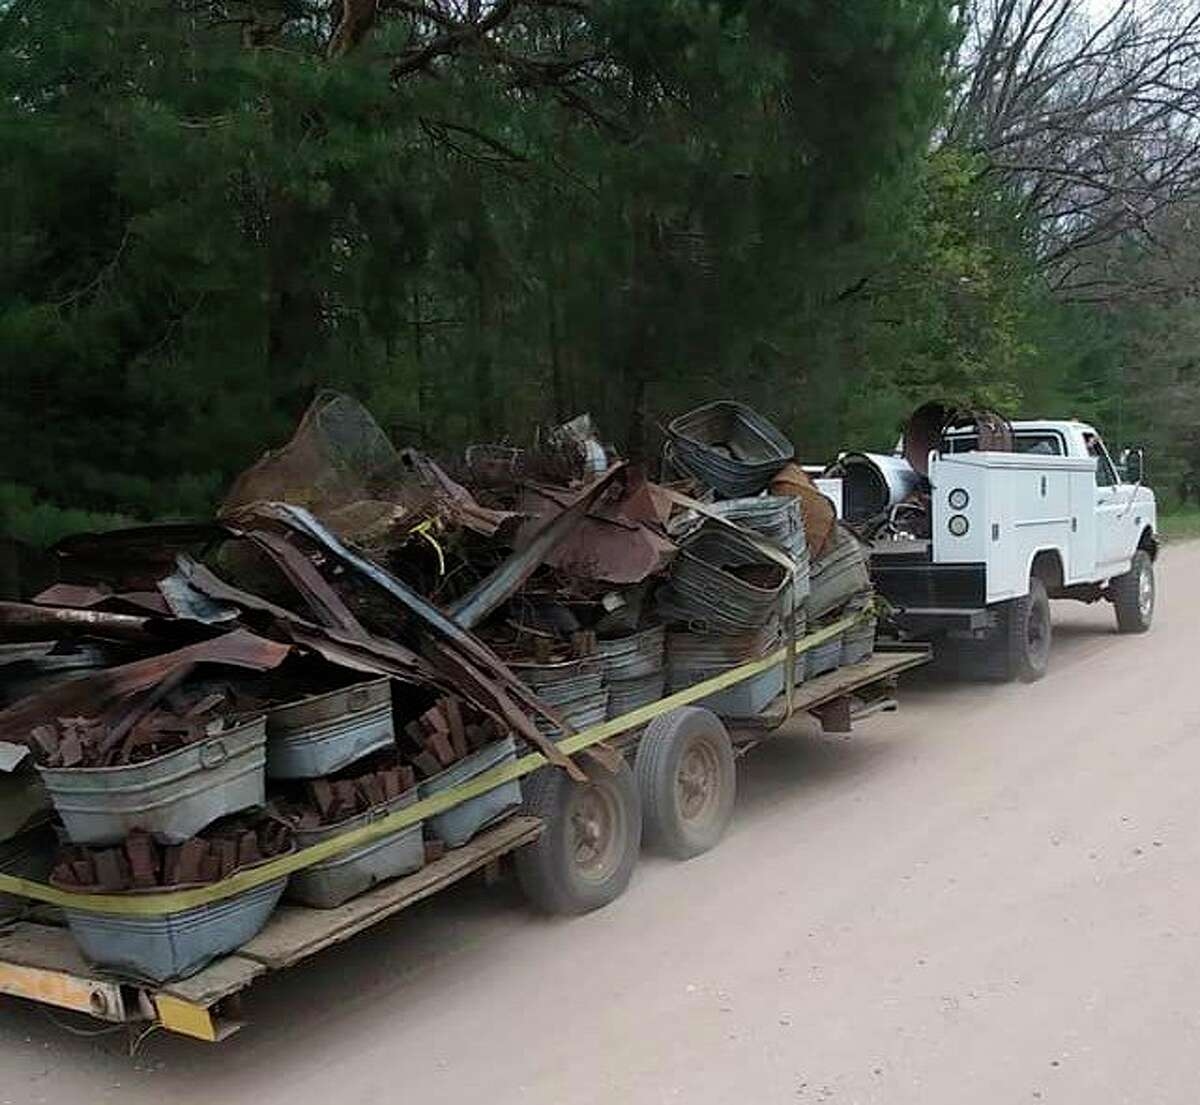 The Dublin Heights Sports Club led a cleanup event at the Arboretum Trail near WellsonSaturday. A group of roughly 35 volunteers cleared out around 400 galvanized buckets, rolls of barbed wire, piping and other items in an effort to reestablish the trail as a recreational site. (Courtesy photo)